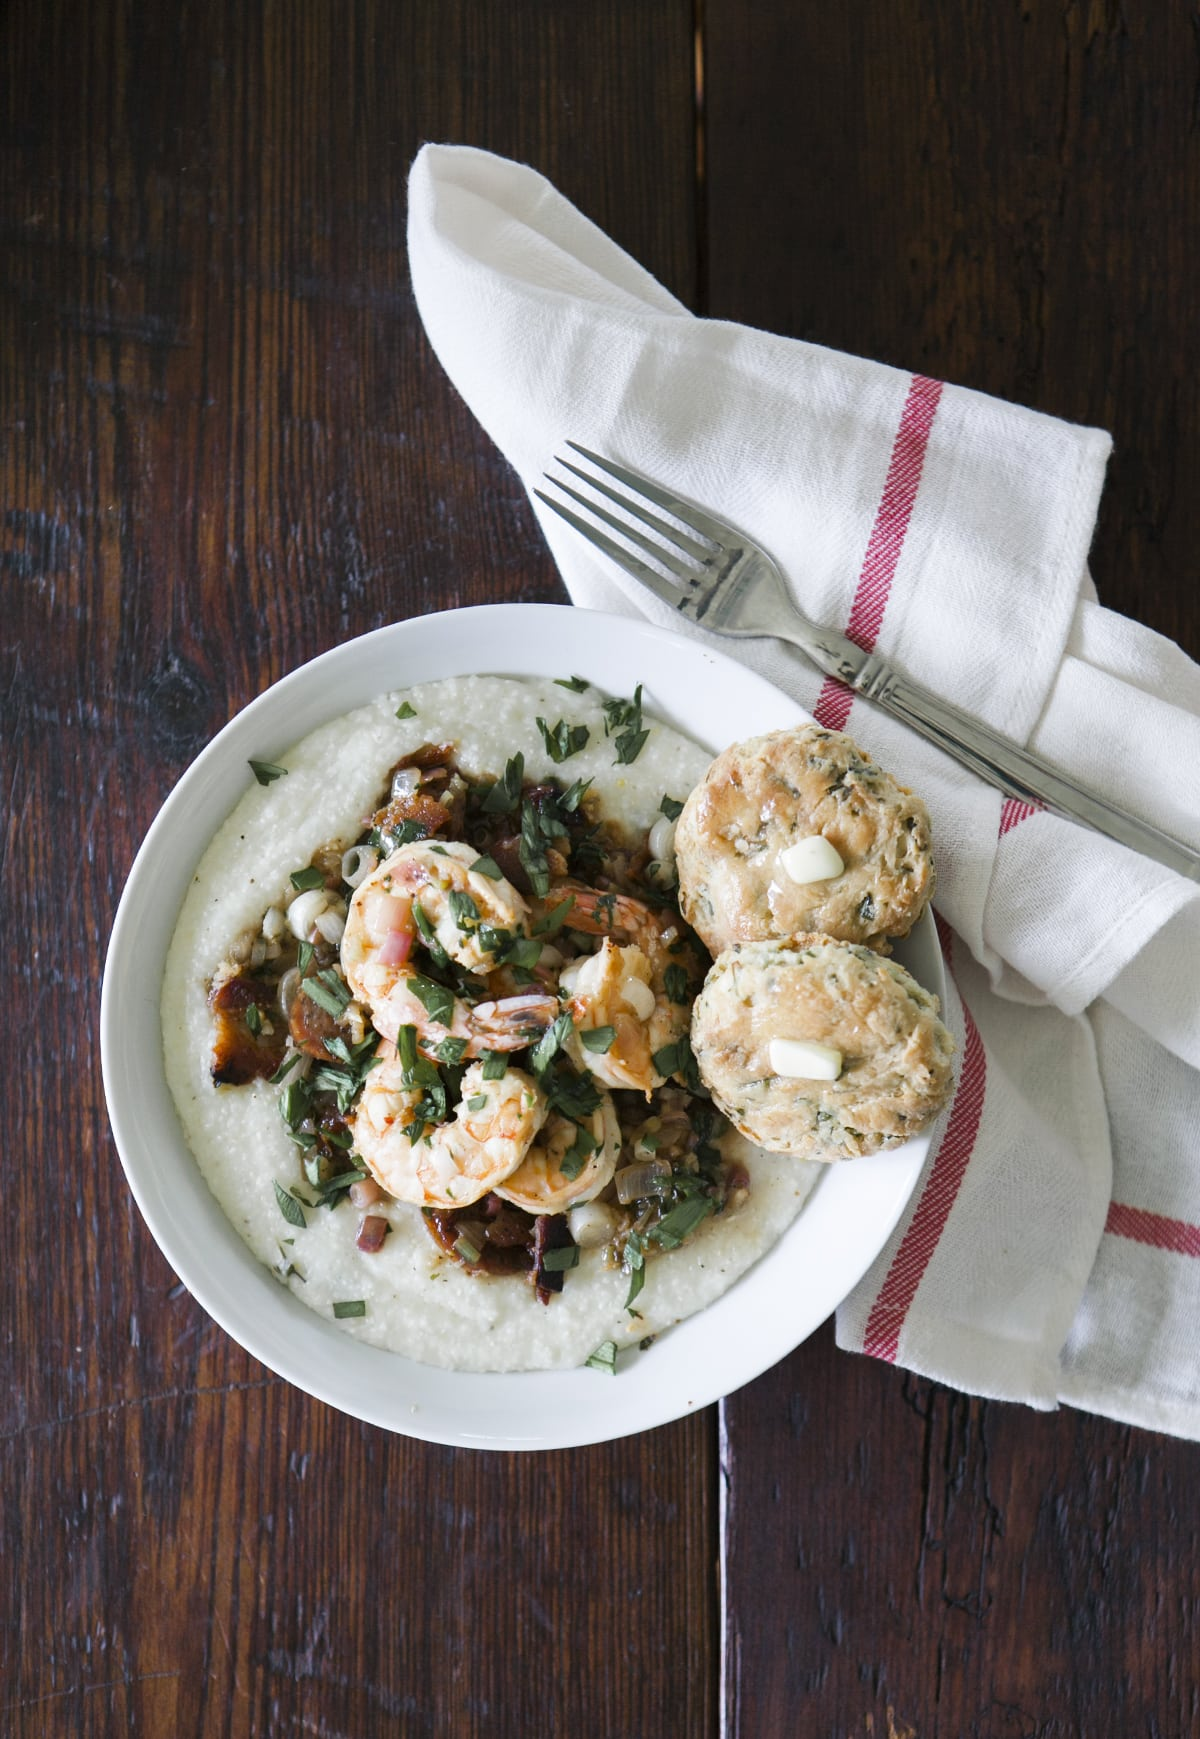 Shrimp & Grits | Ramp Biscuits | Southern Cooking | Jessica Brigham Blog | Magazine Ready for Life